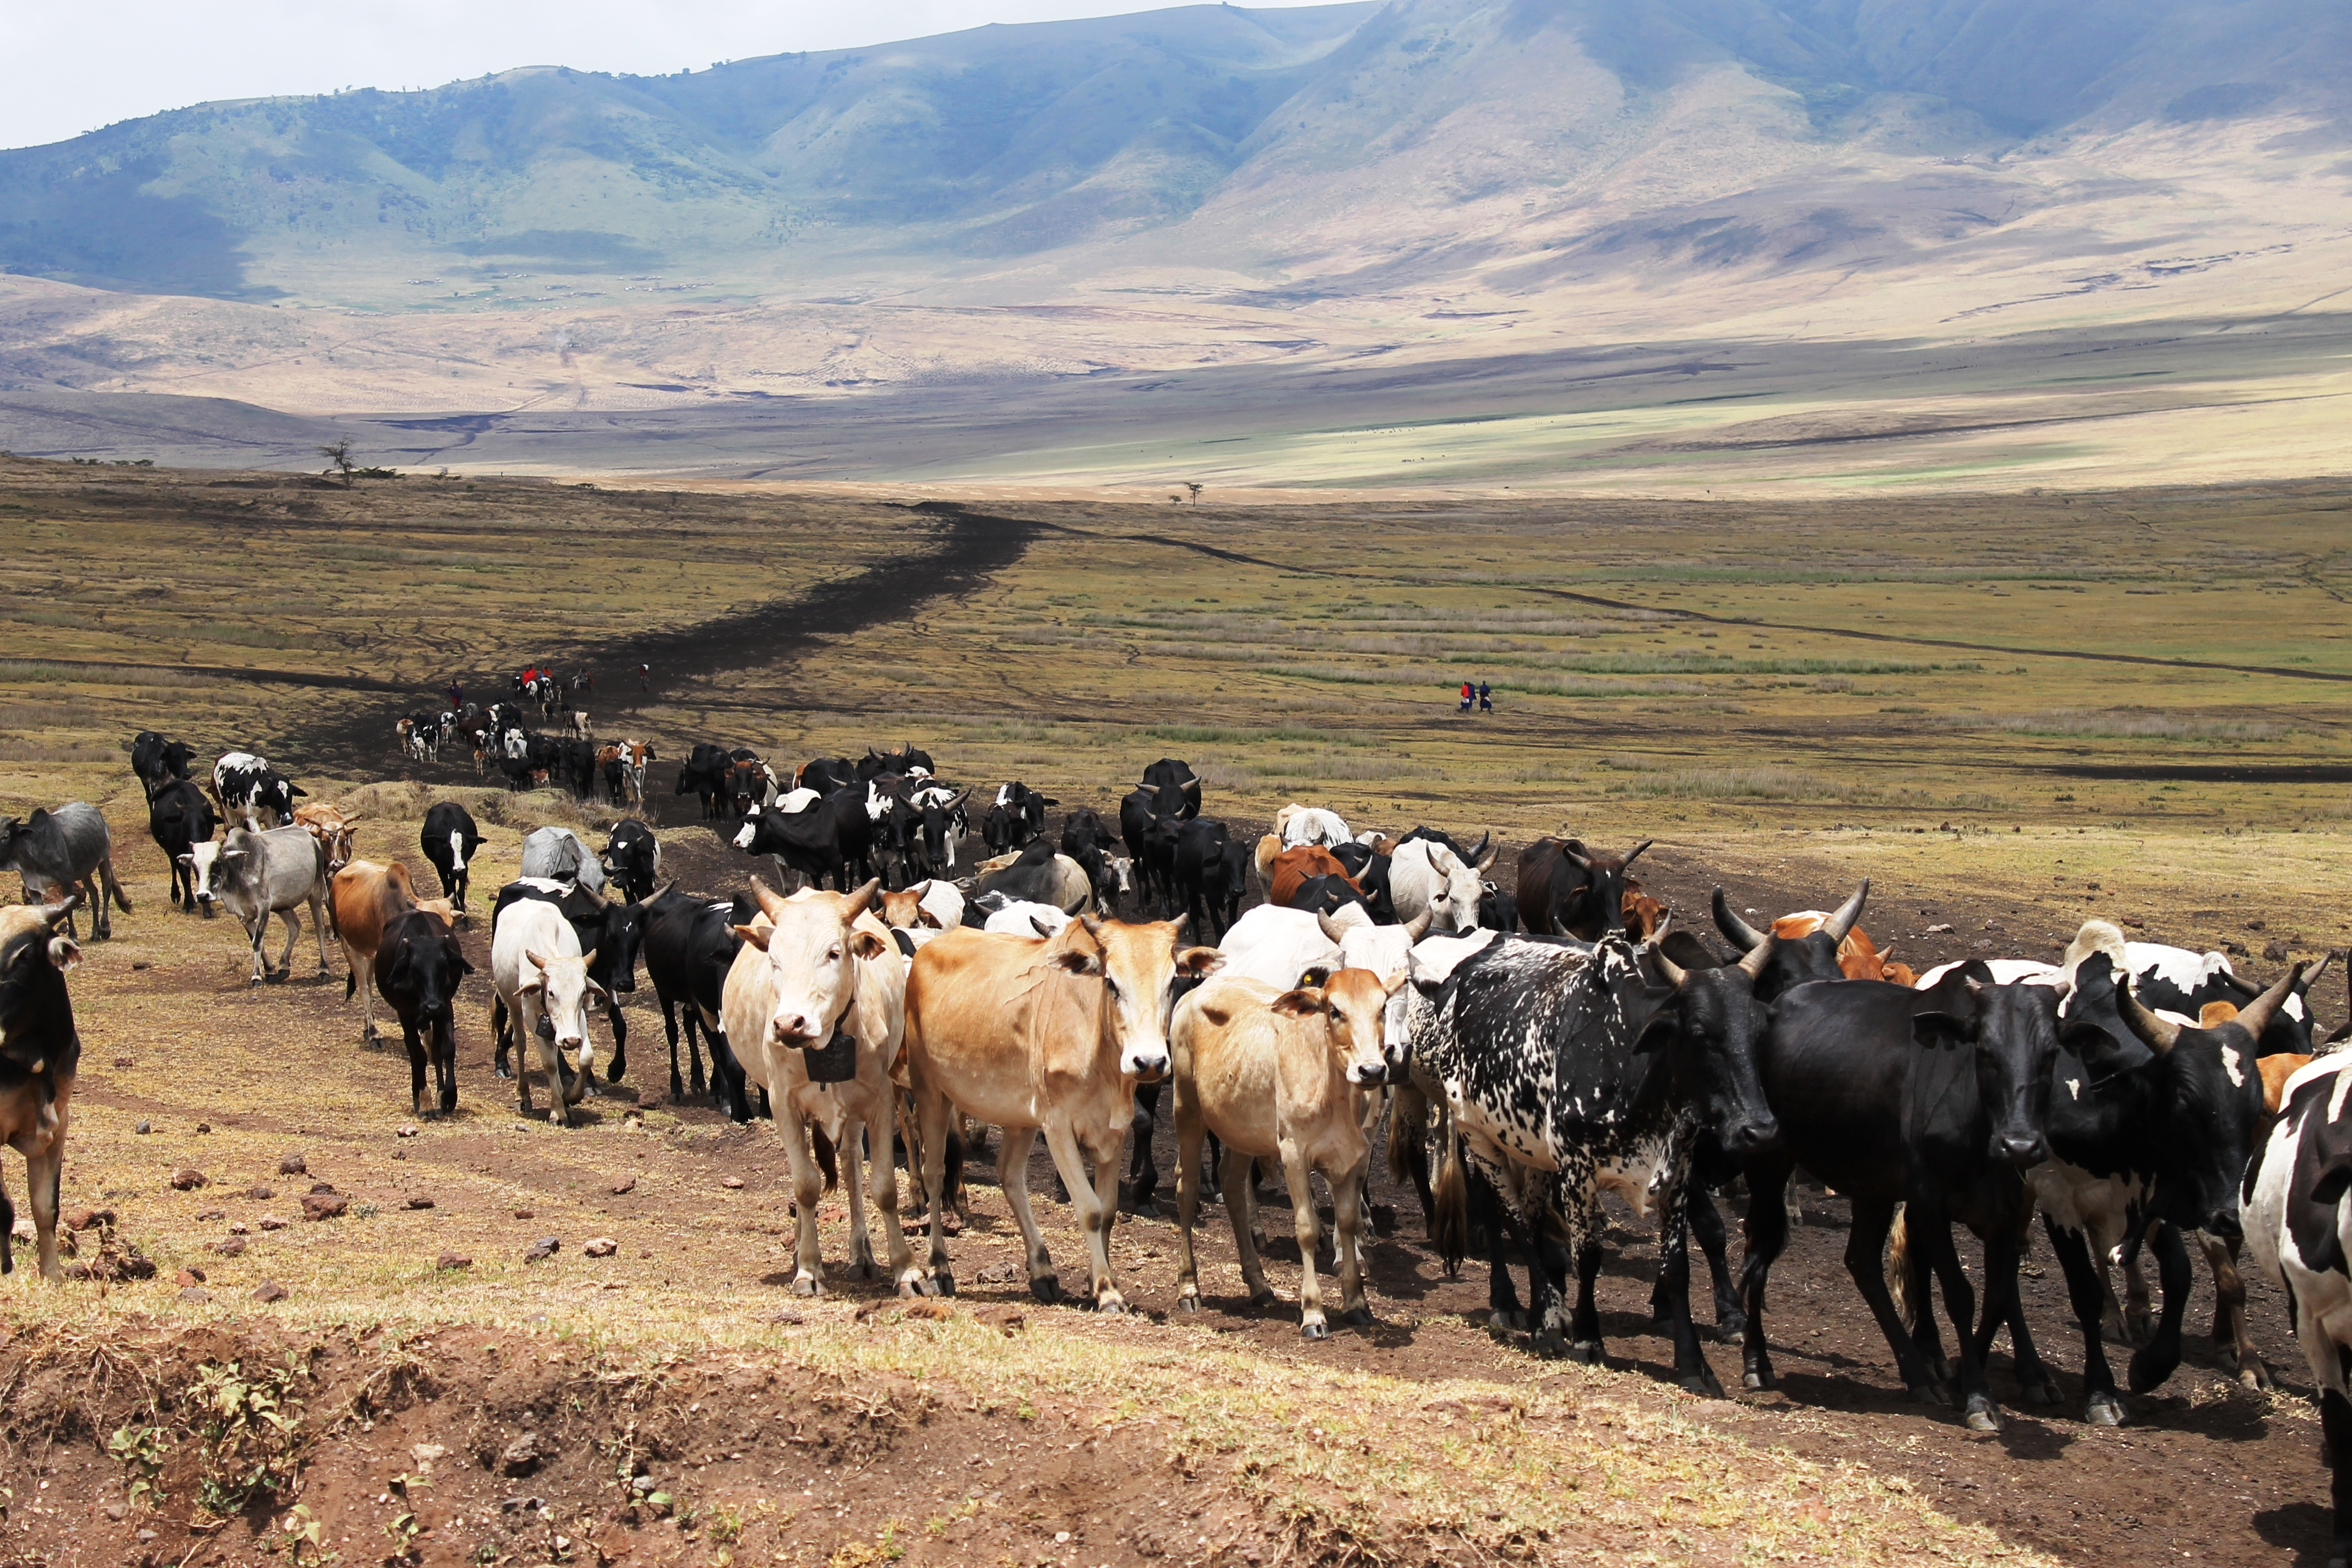 The Masai herding cows in the Ngorogoro Conseration Area.